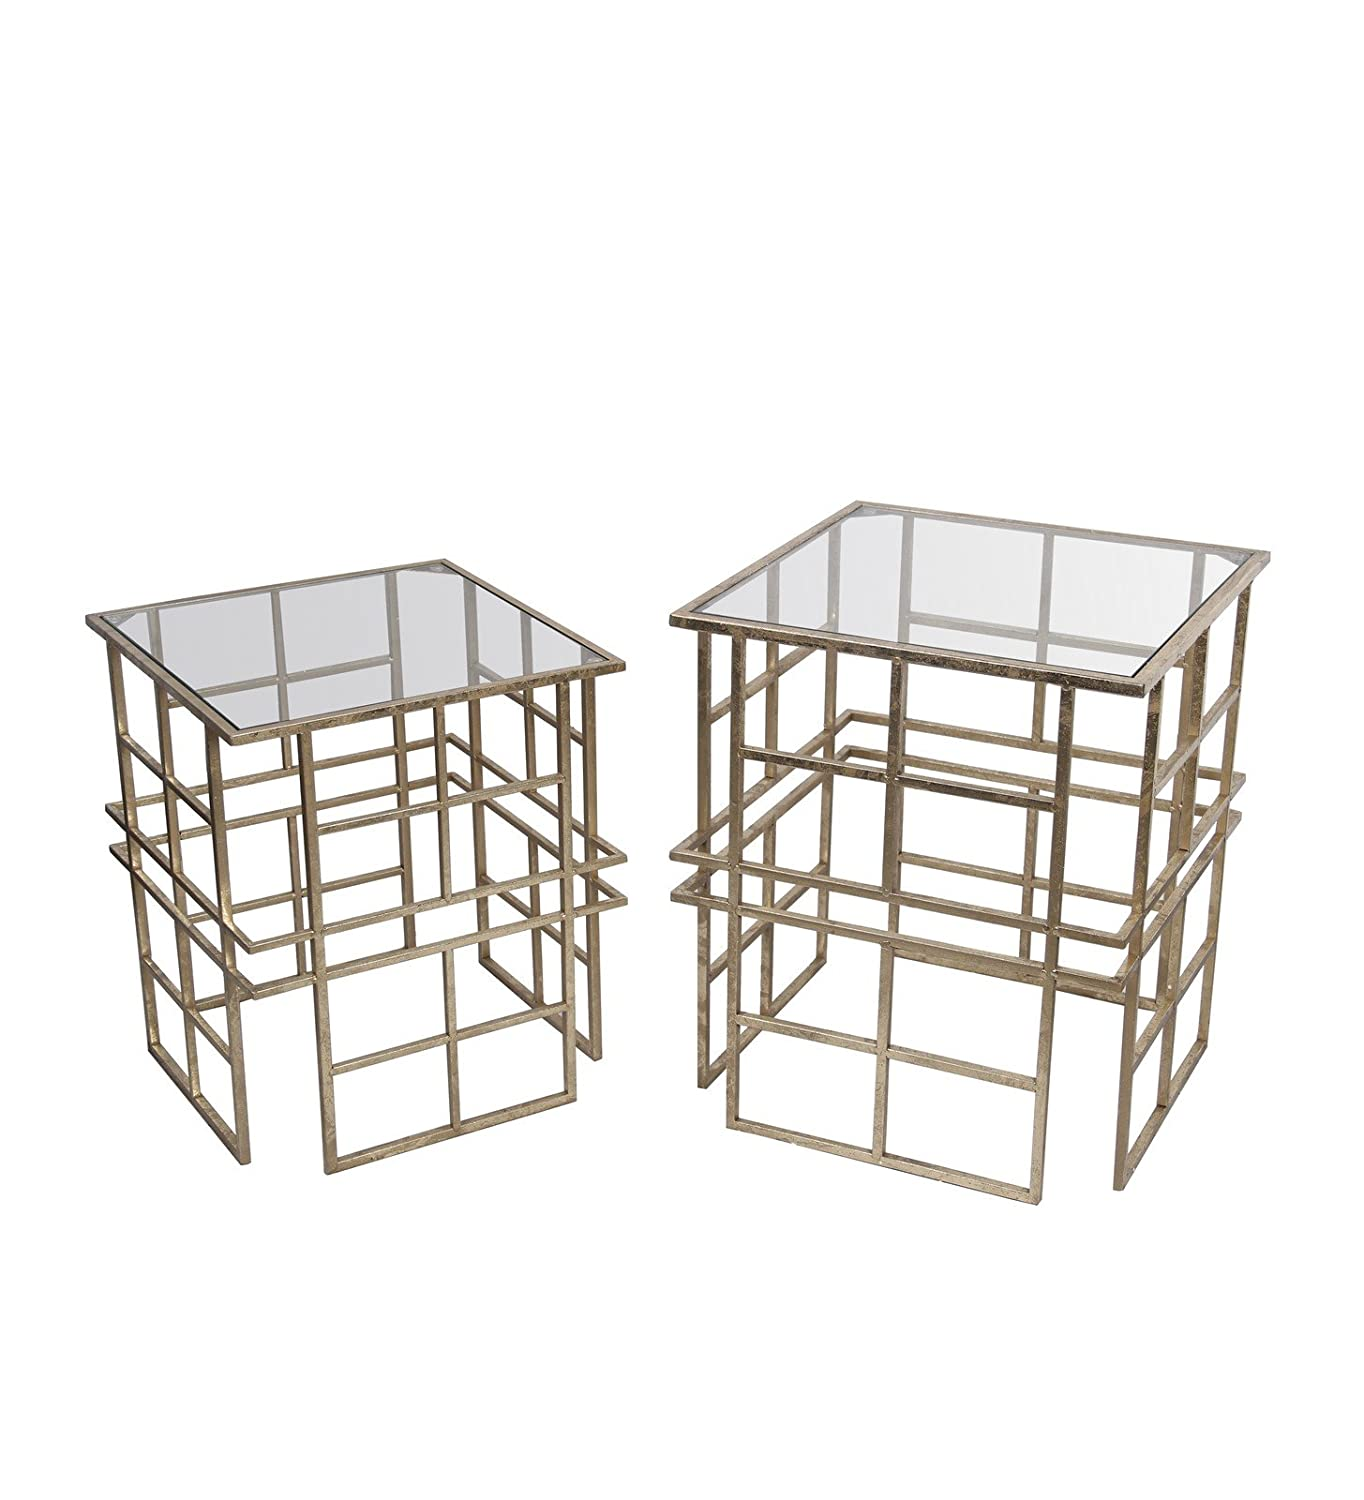 Privilege 18711 Iron and Glass Accent Stands Gold 2 Piece